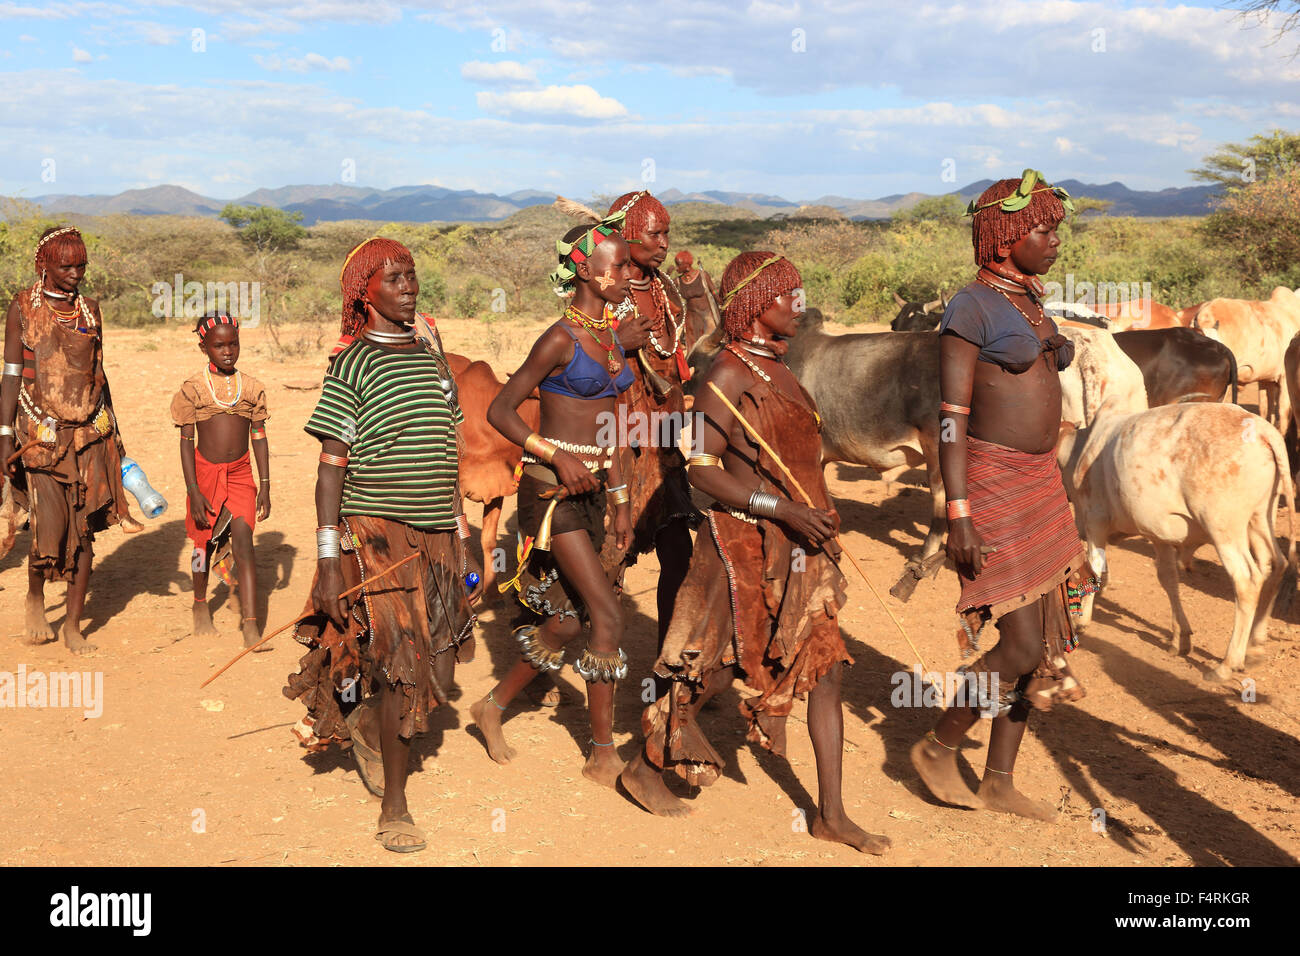 Omo region, the tribe of the hammer, hammer, hammer, hammer, Amar or Amer, bulls for the initiation ritual, ceremony, Stock Photo